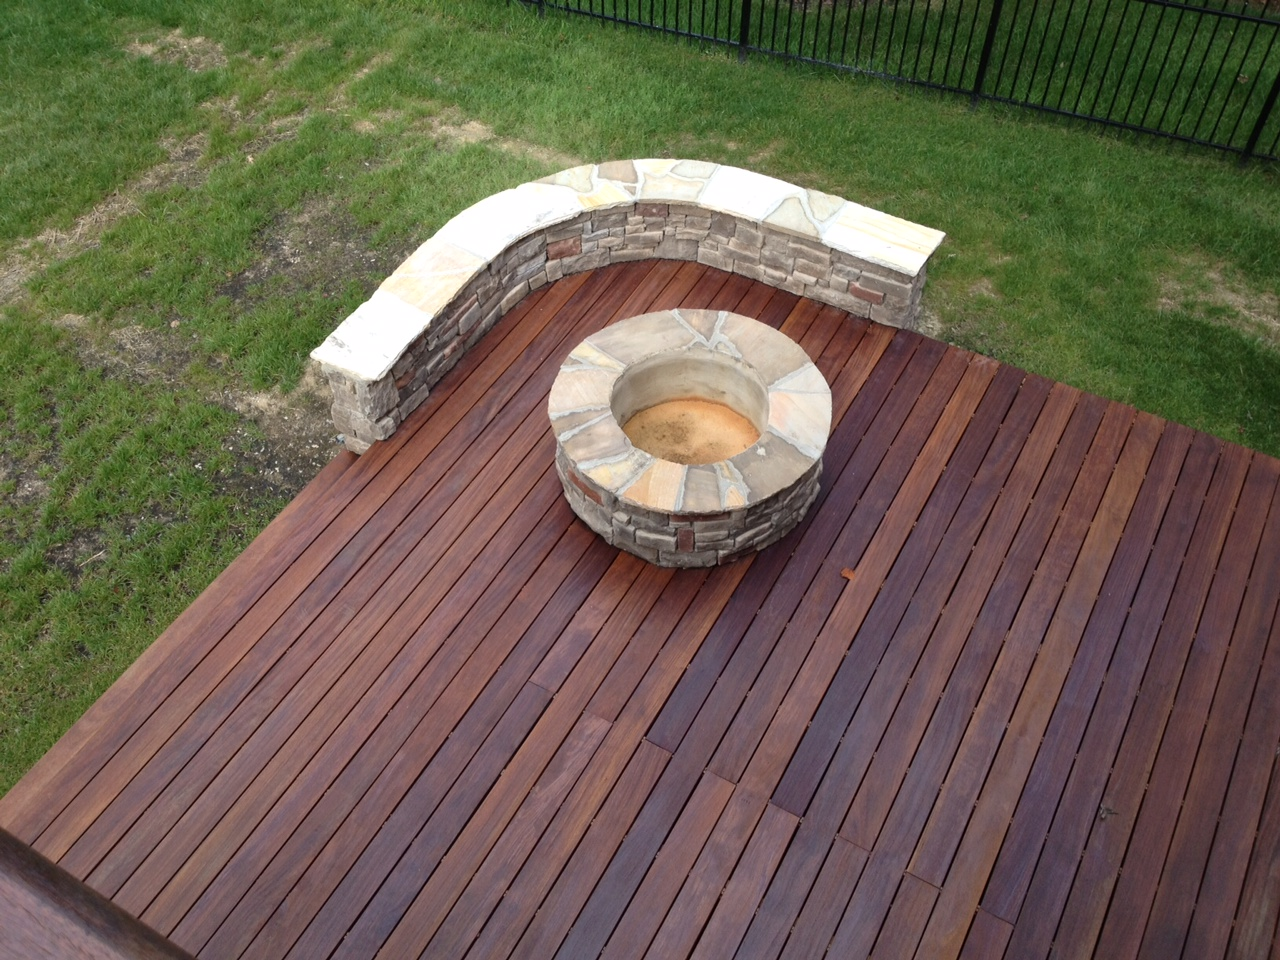 Metal fire pit on wood deck - With Many Options In Pavers And Stone An Outdoor Firepit Is A Natural Addition For Your Patio With Custom Options For Accessories Such As Wood